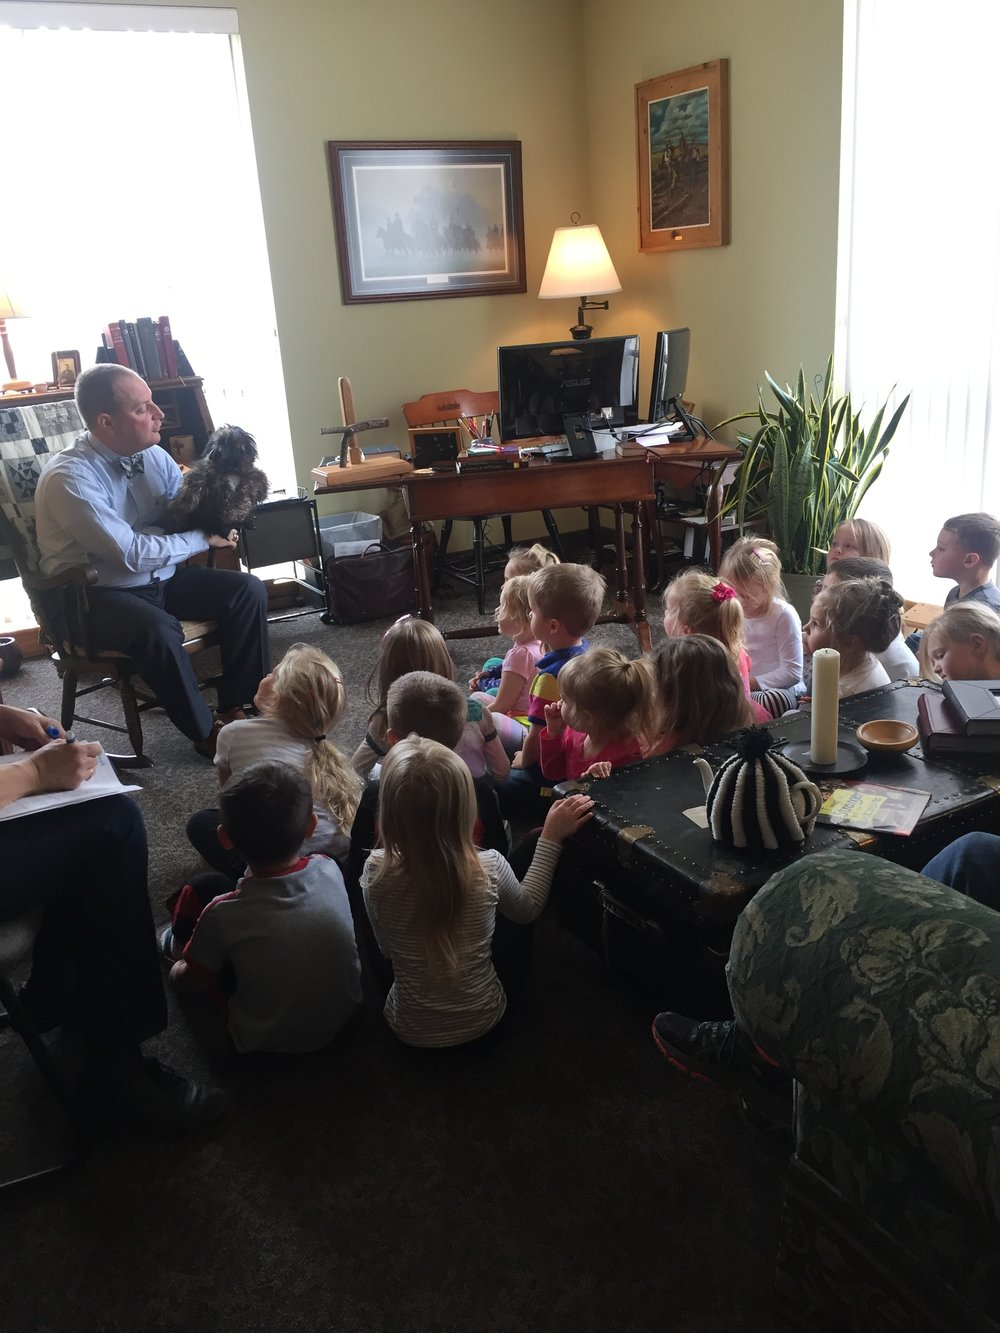 Pastor Walt regularly reads Bible stories to children.